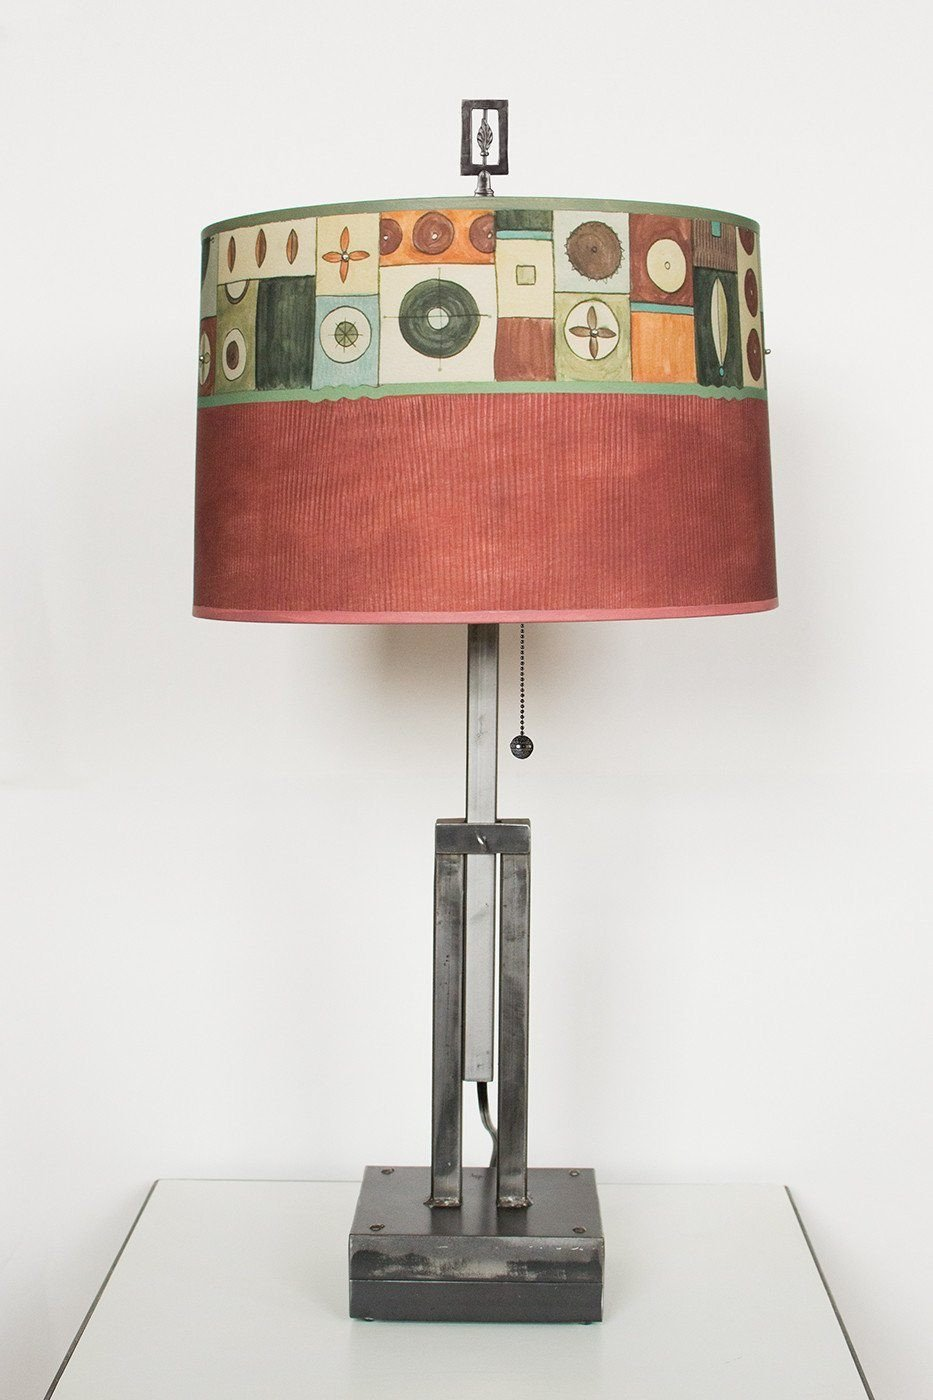 Adjustable-Height Steel Table Lamp with Large Drum Shade  in Lucky Mosaic Maroon